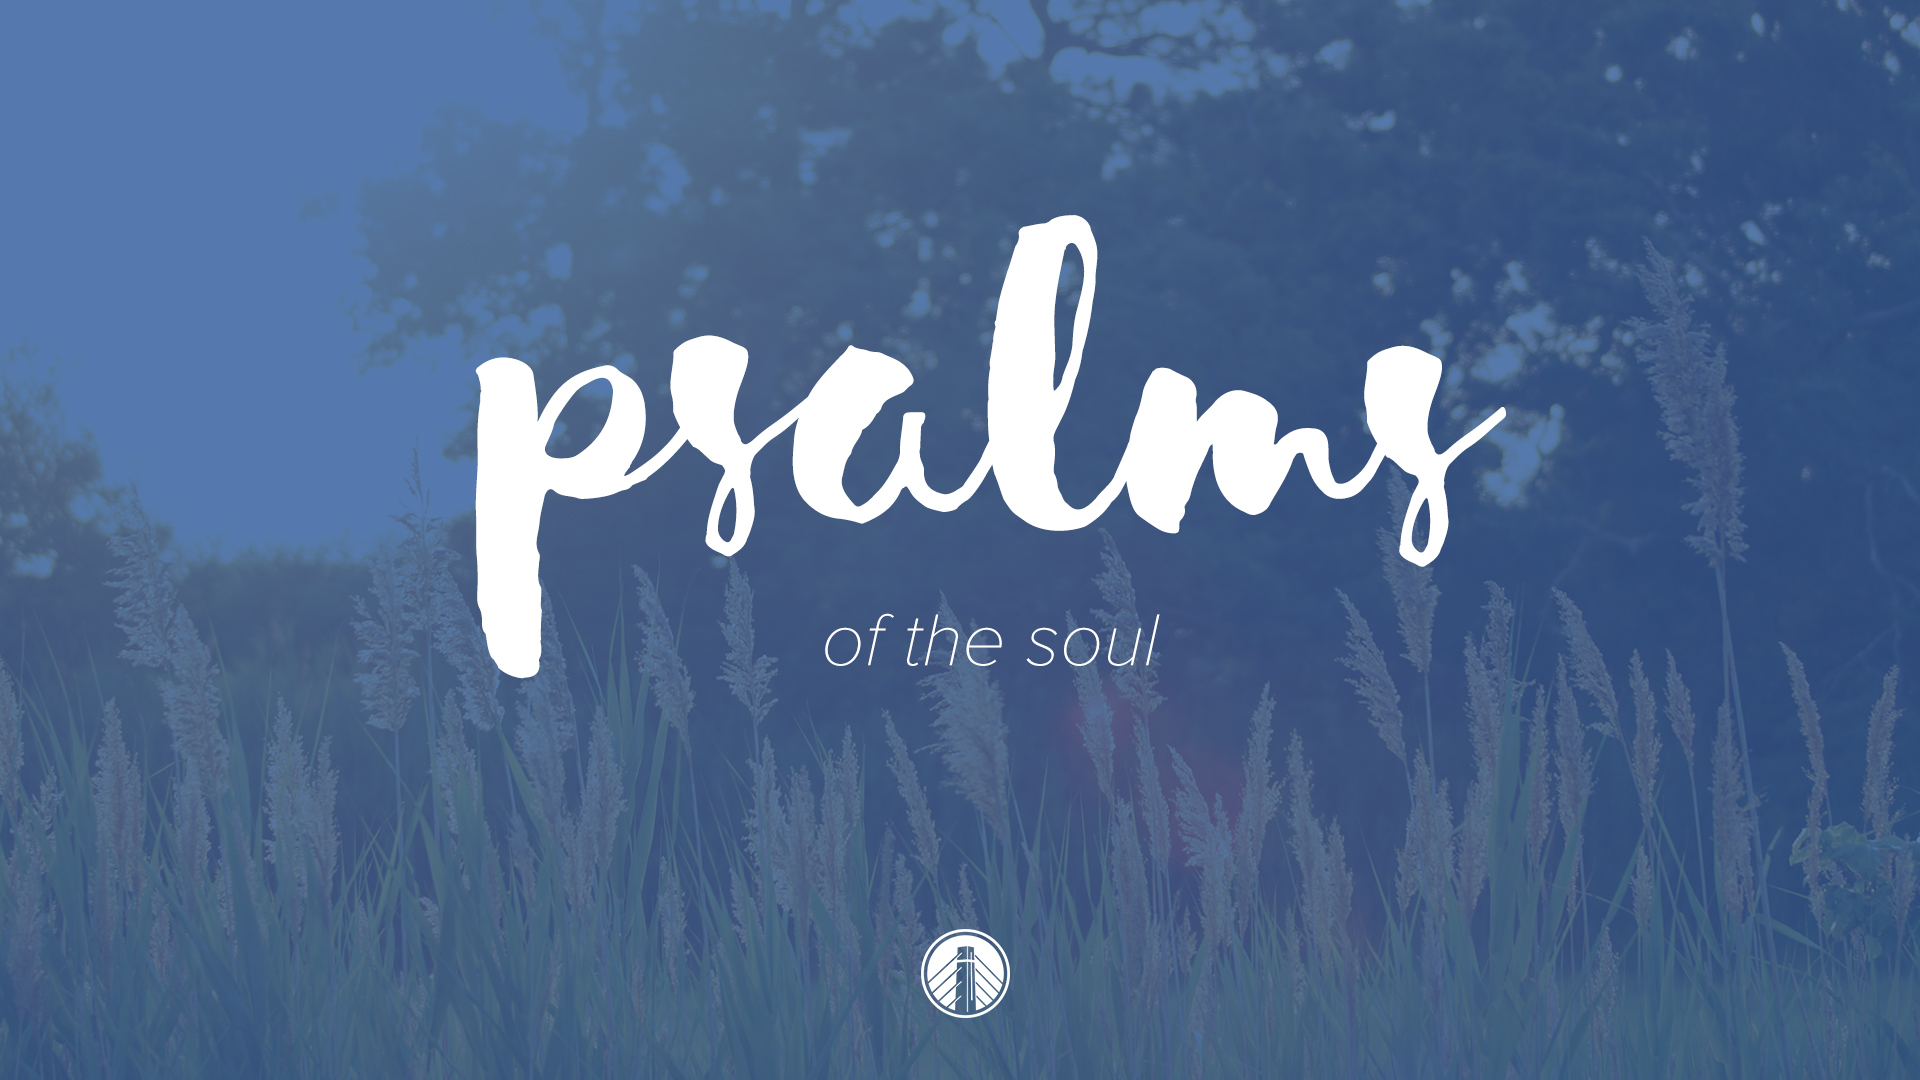 Psalms Summer 2016 MAIN TITLE.jpg